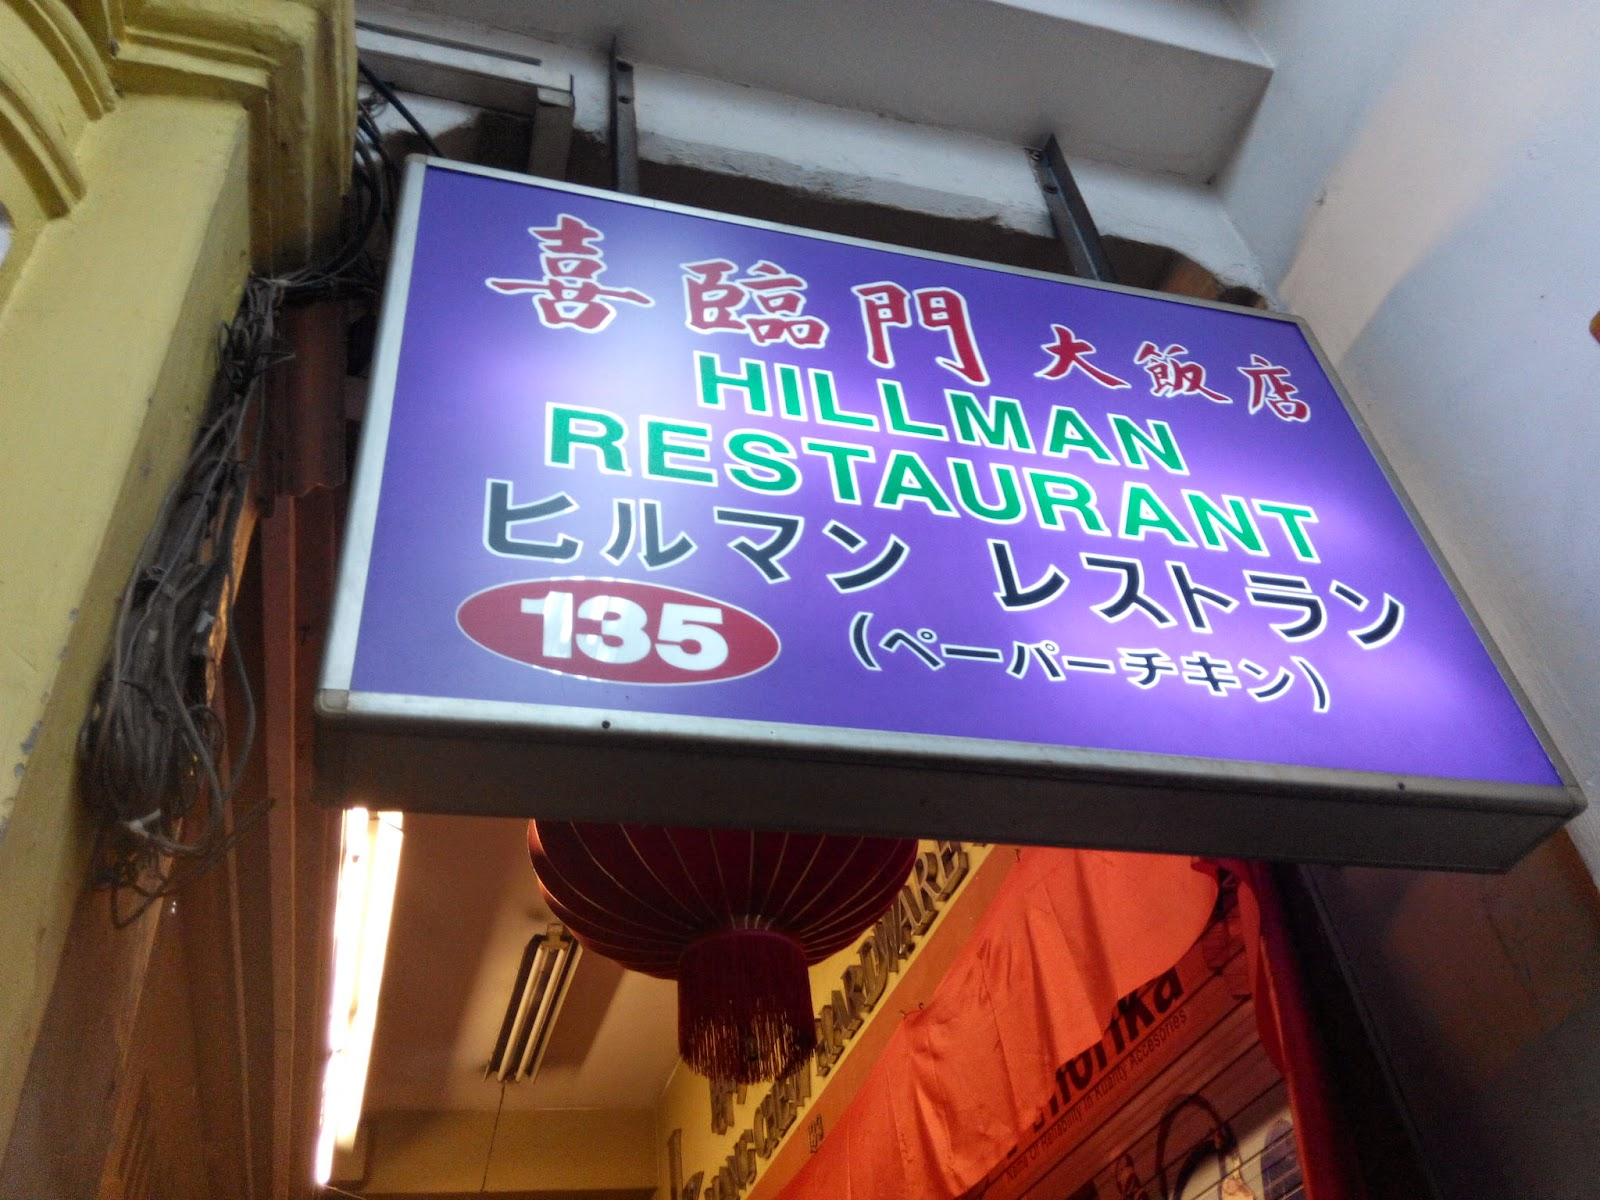 Hillman restaurant, Kitchener Road, Singapore